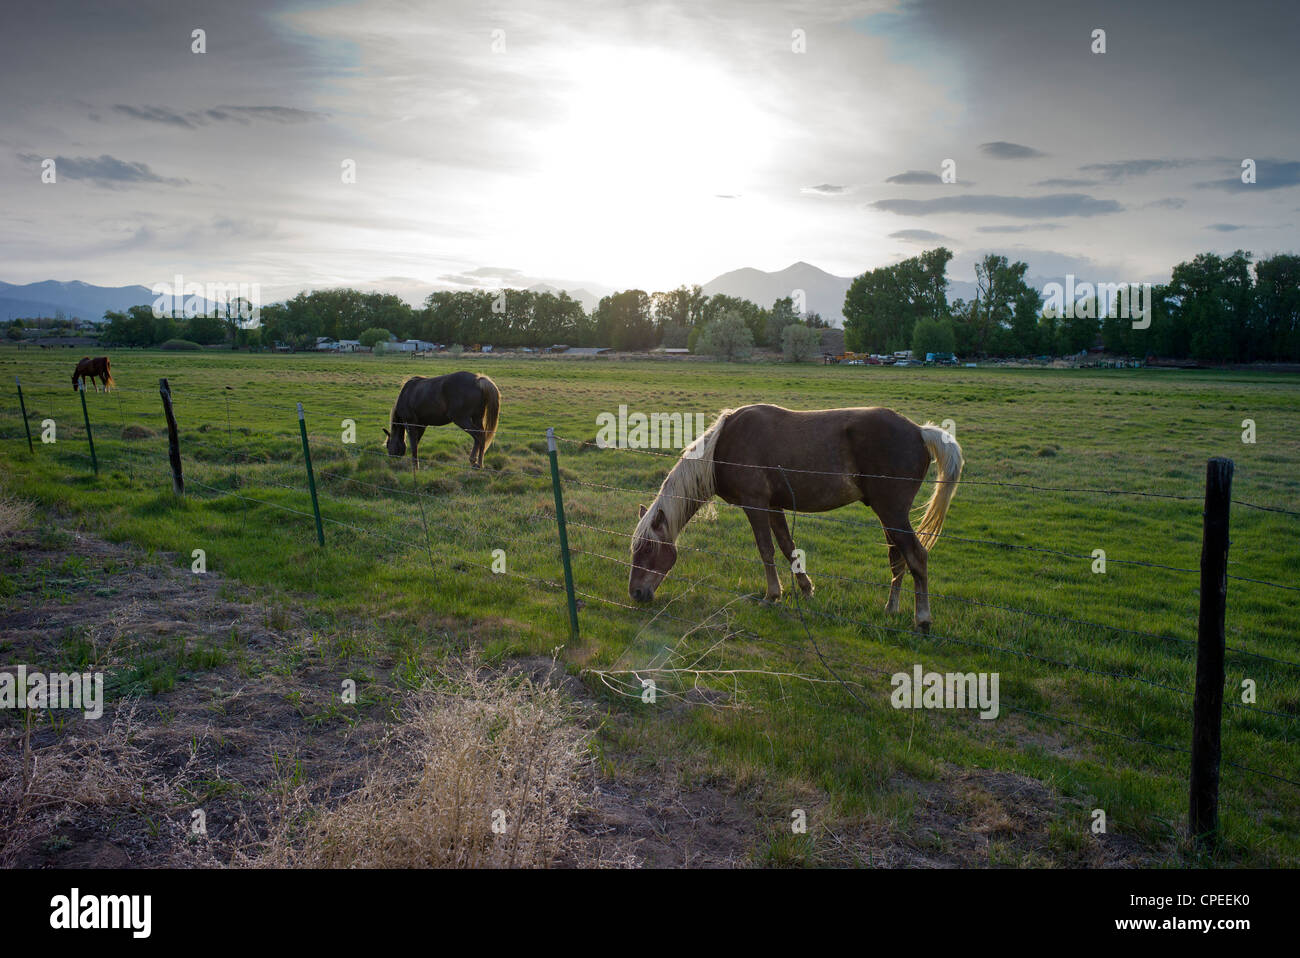 Horses grazing in pasture on fringe of the small mountain town of Salida, Colorado, USA Stock Photo